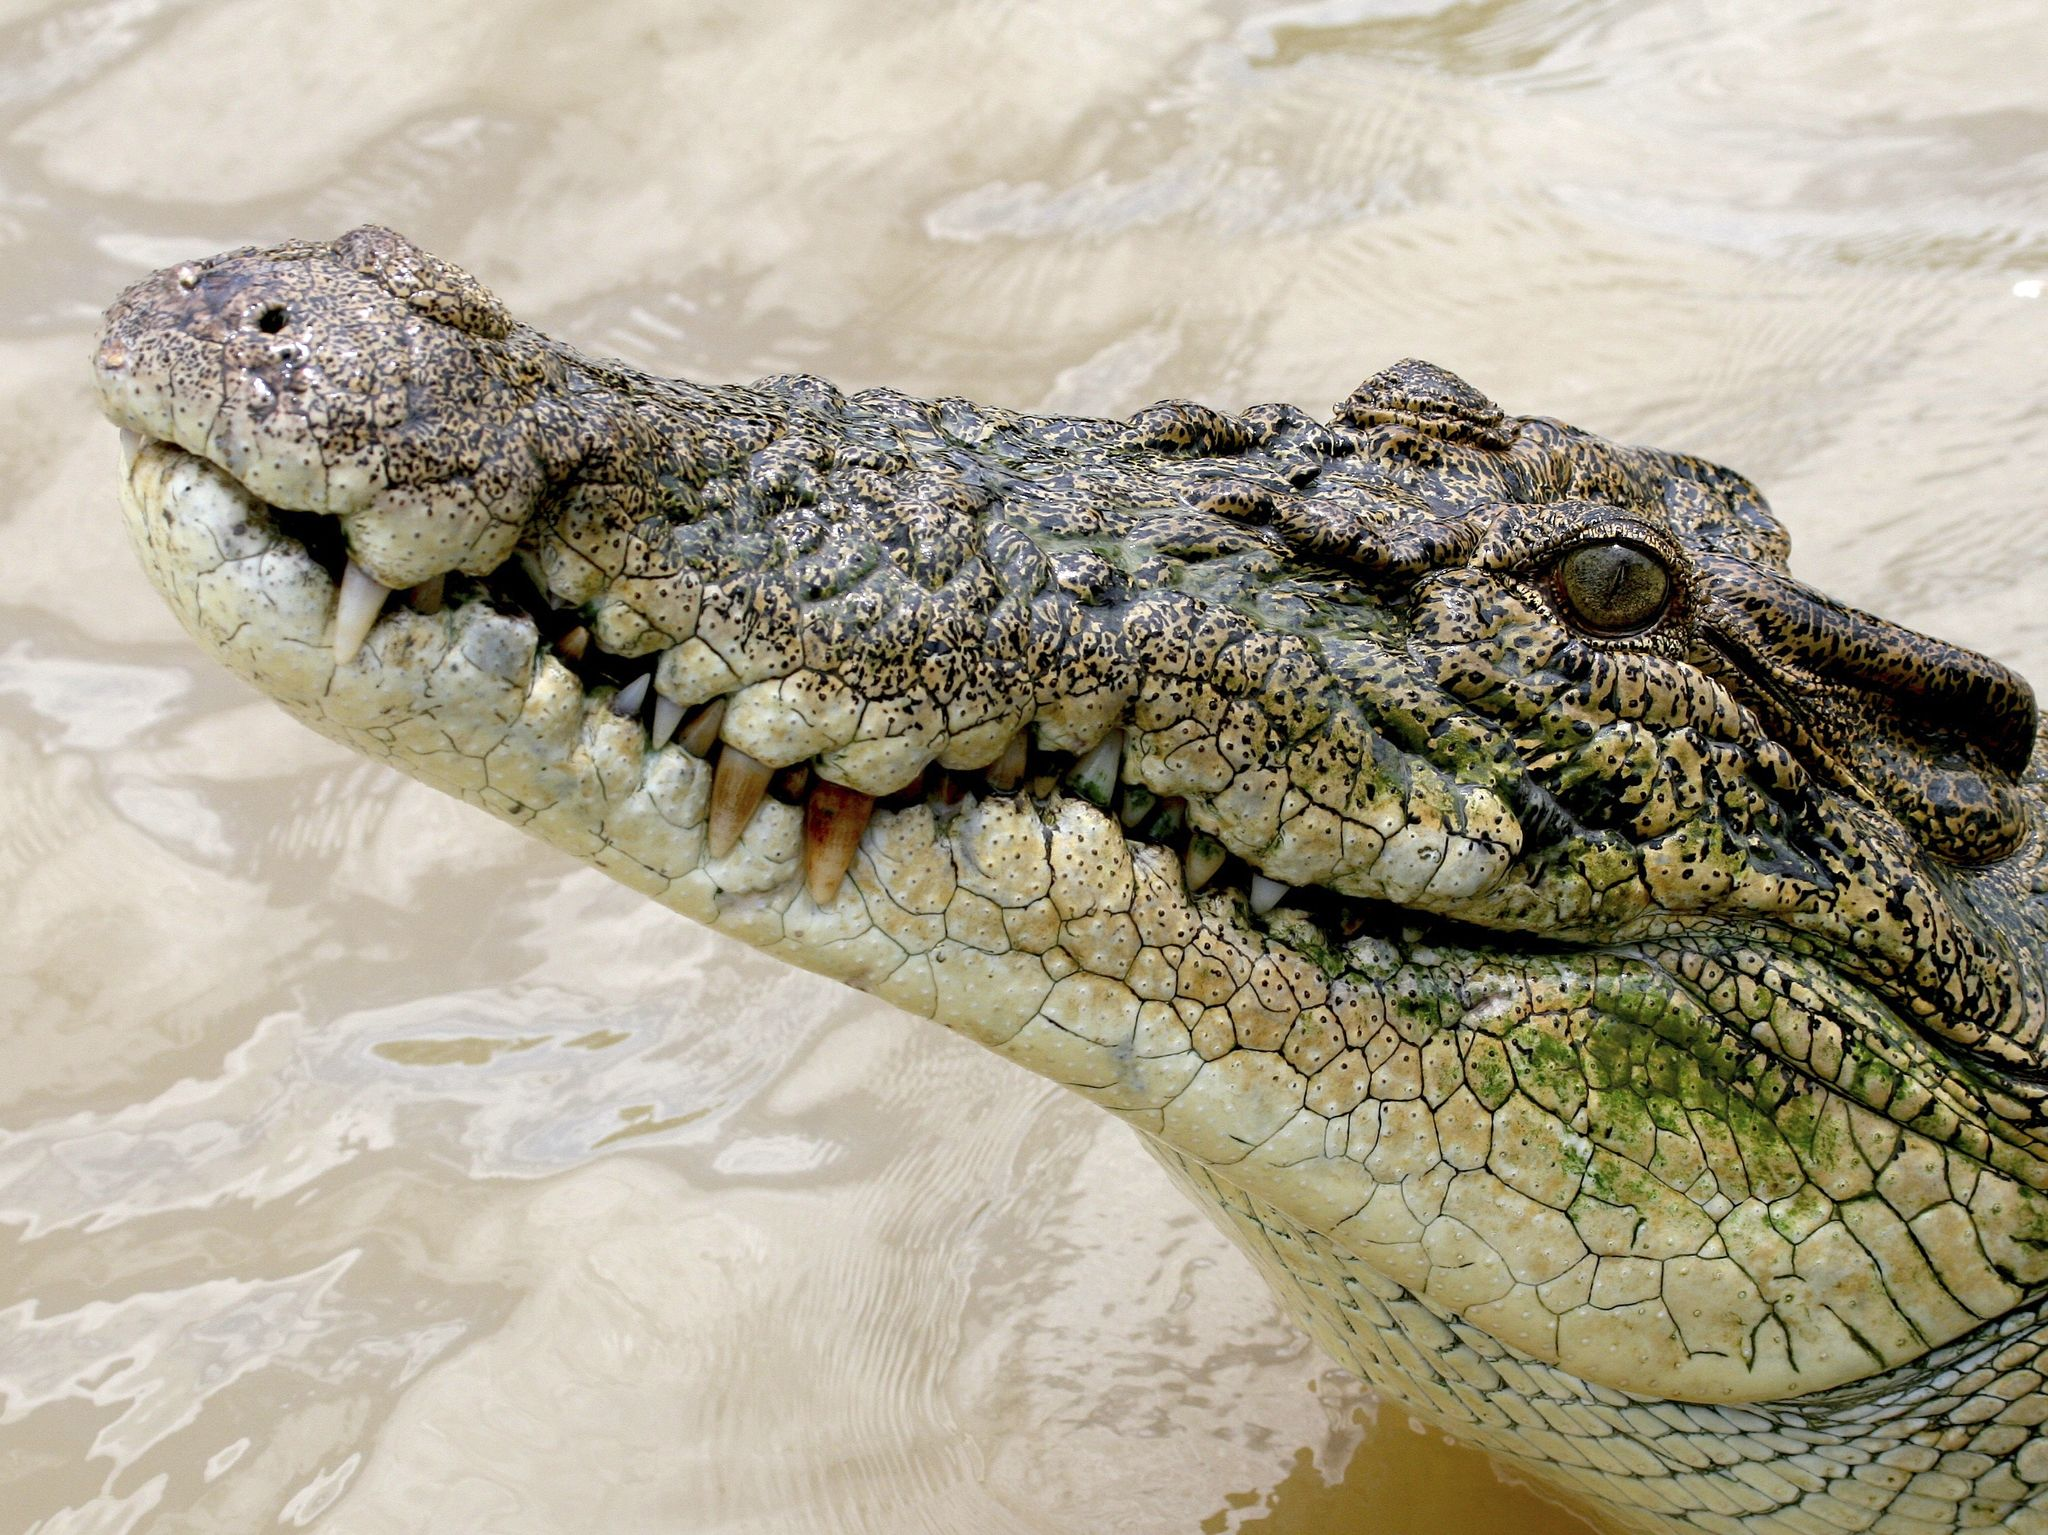 Adult saltwater crocodile eyes a potential meal. It is the largest reptile on Earth and rules... [Photo of the day - October 2020]